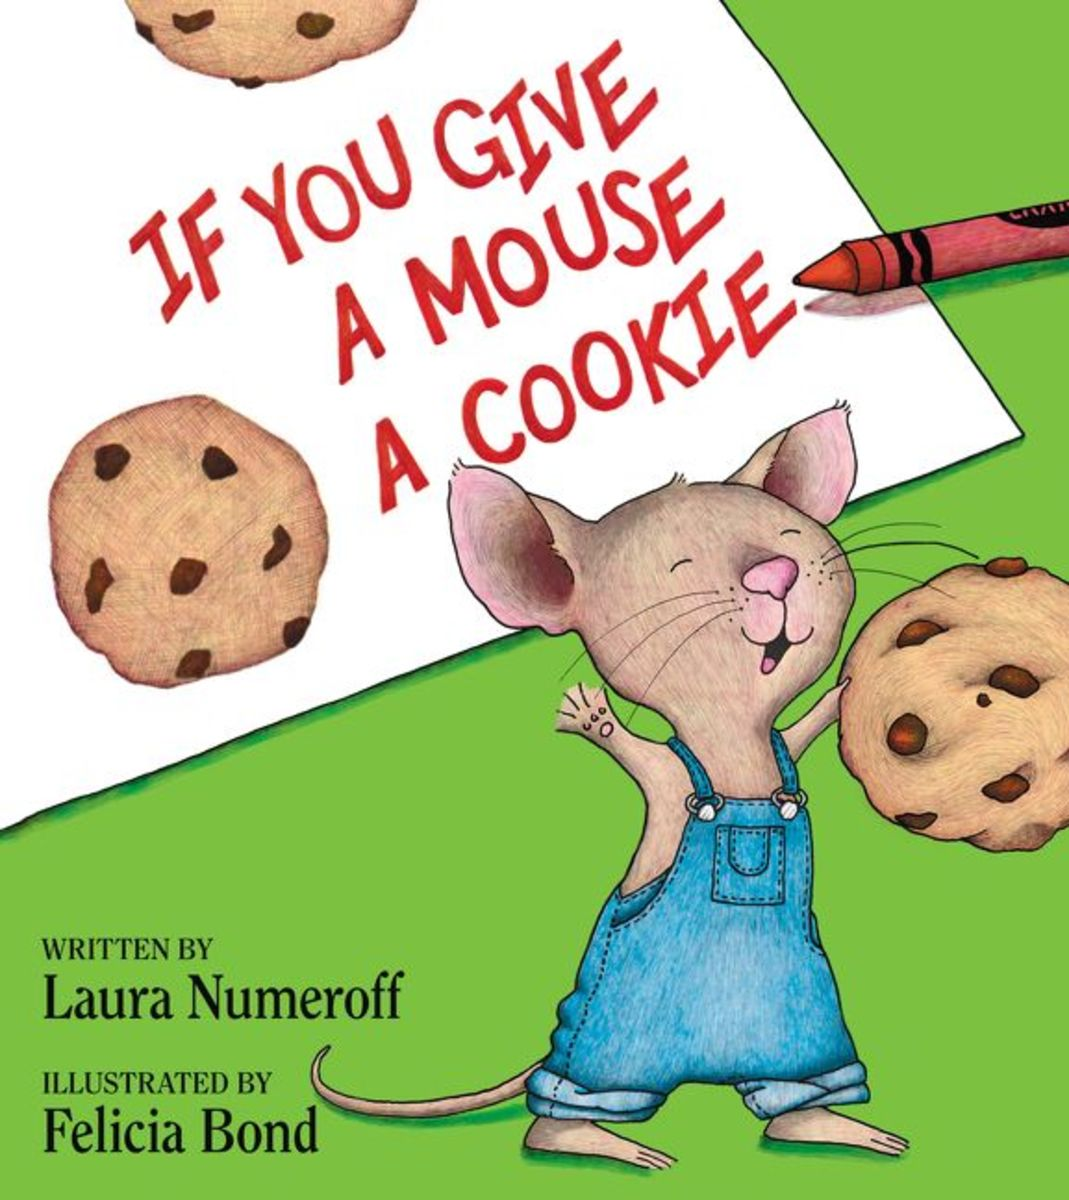 Laura Numeroff actually came up with the concept for this book on a road trip, narrating it to a friend as they drove.